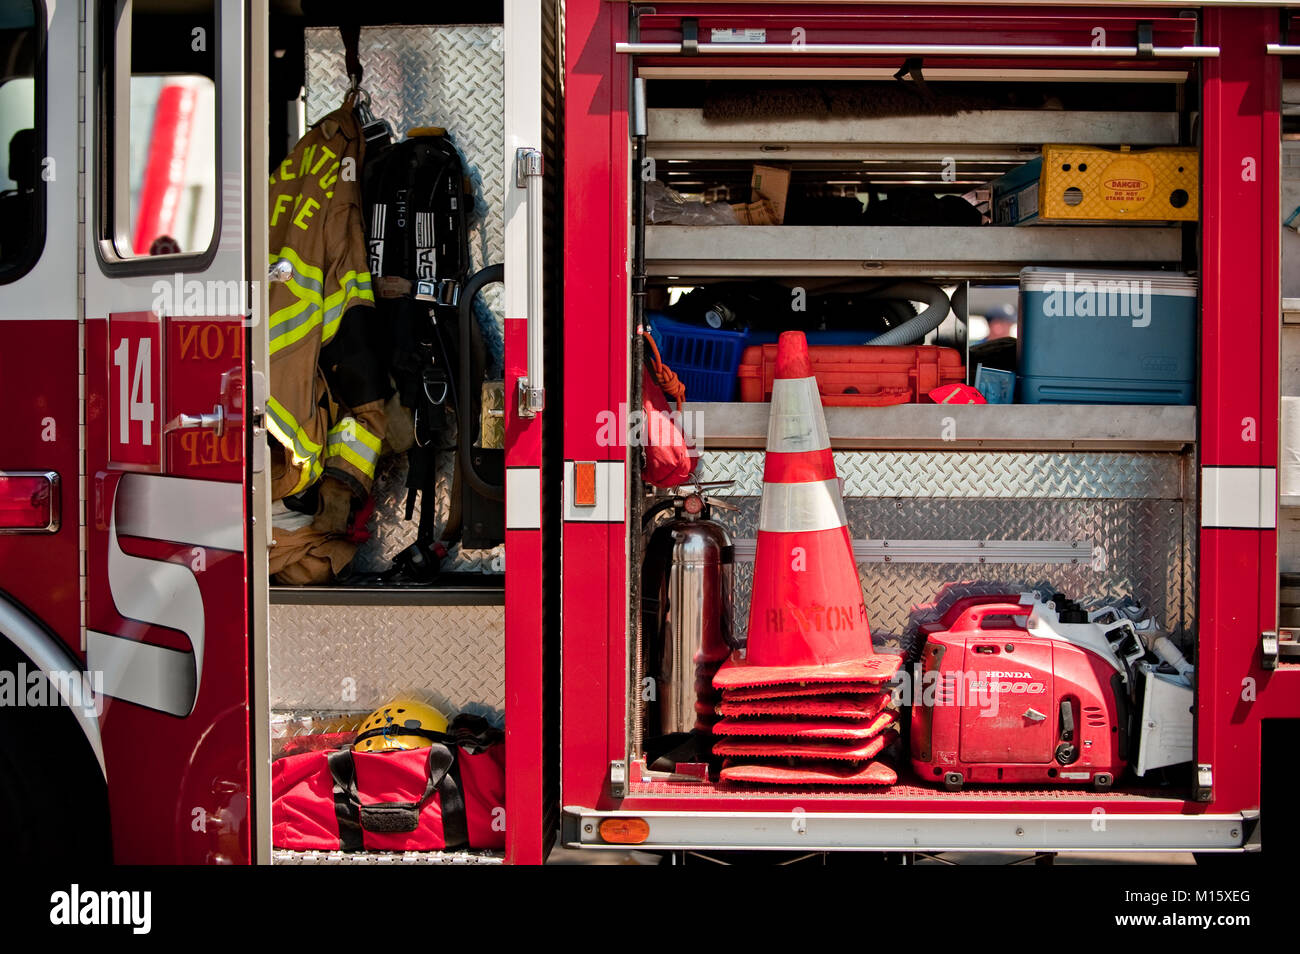 Fire fighting equipment on display inside a fire truck - Stock Image